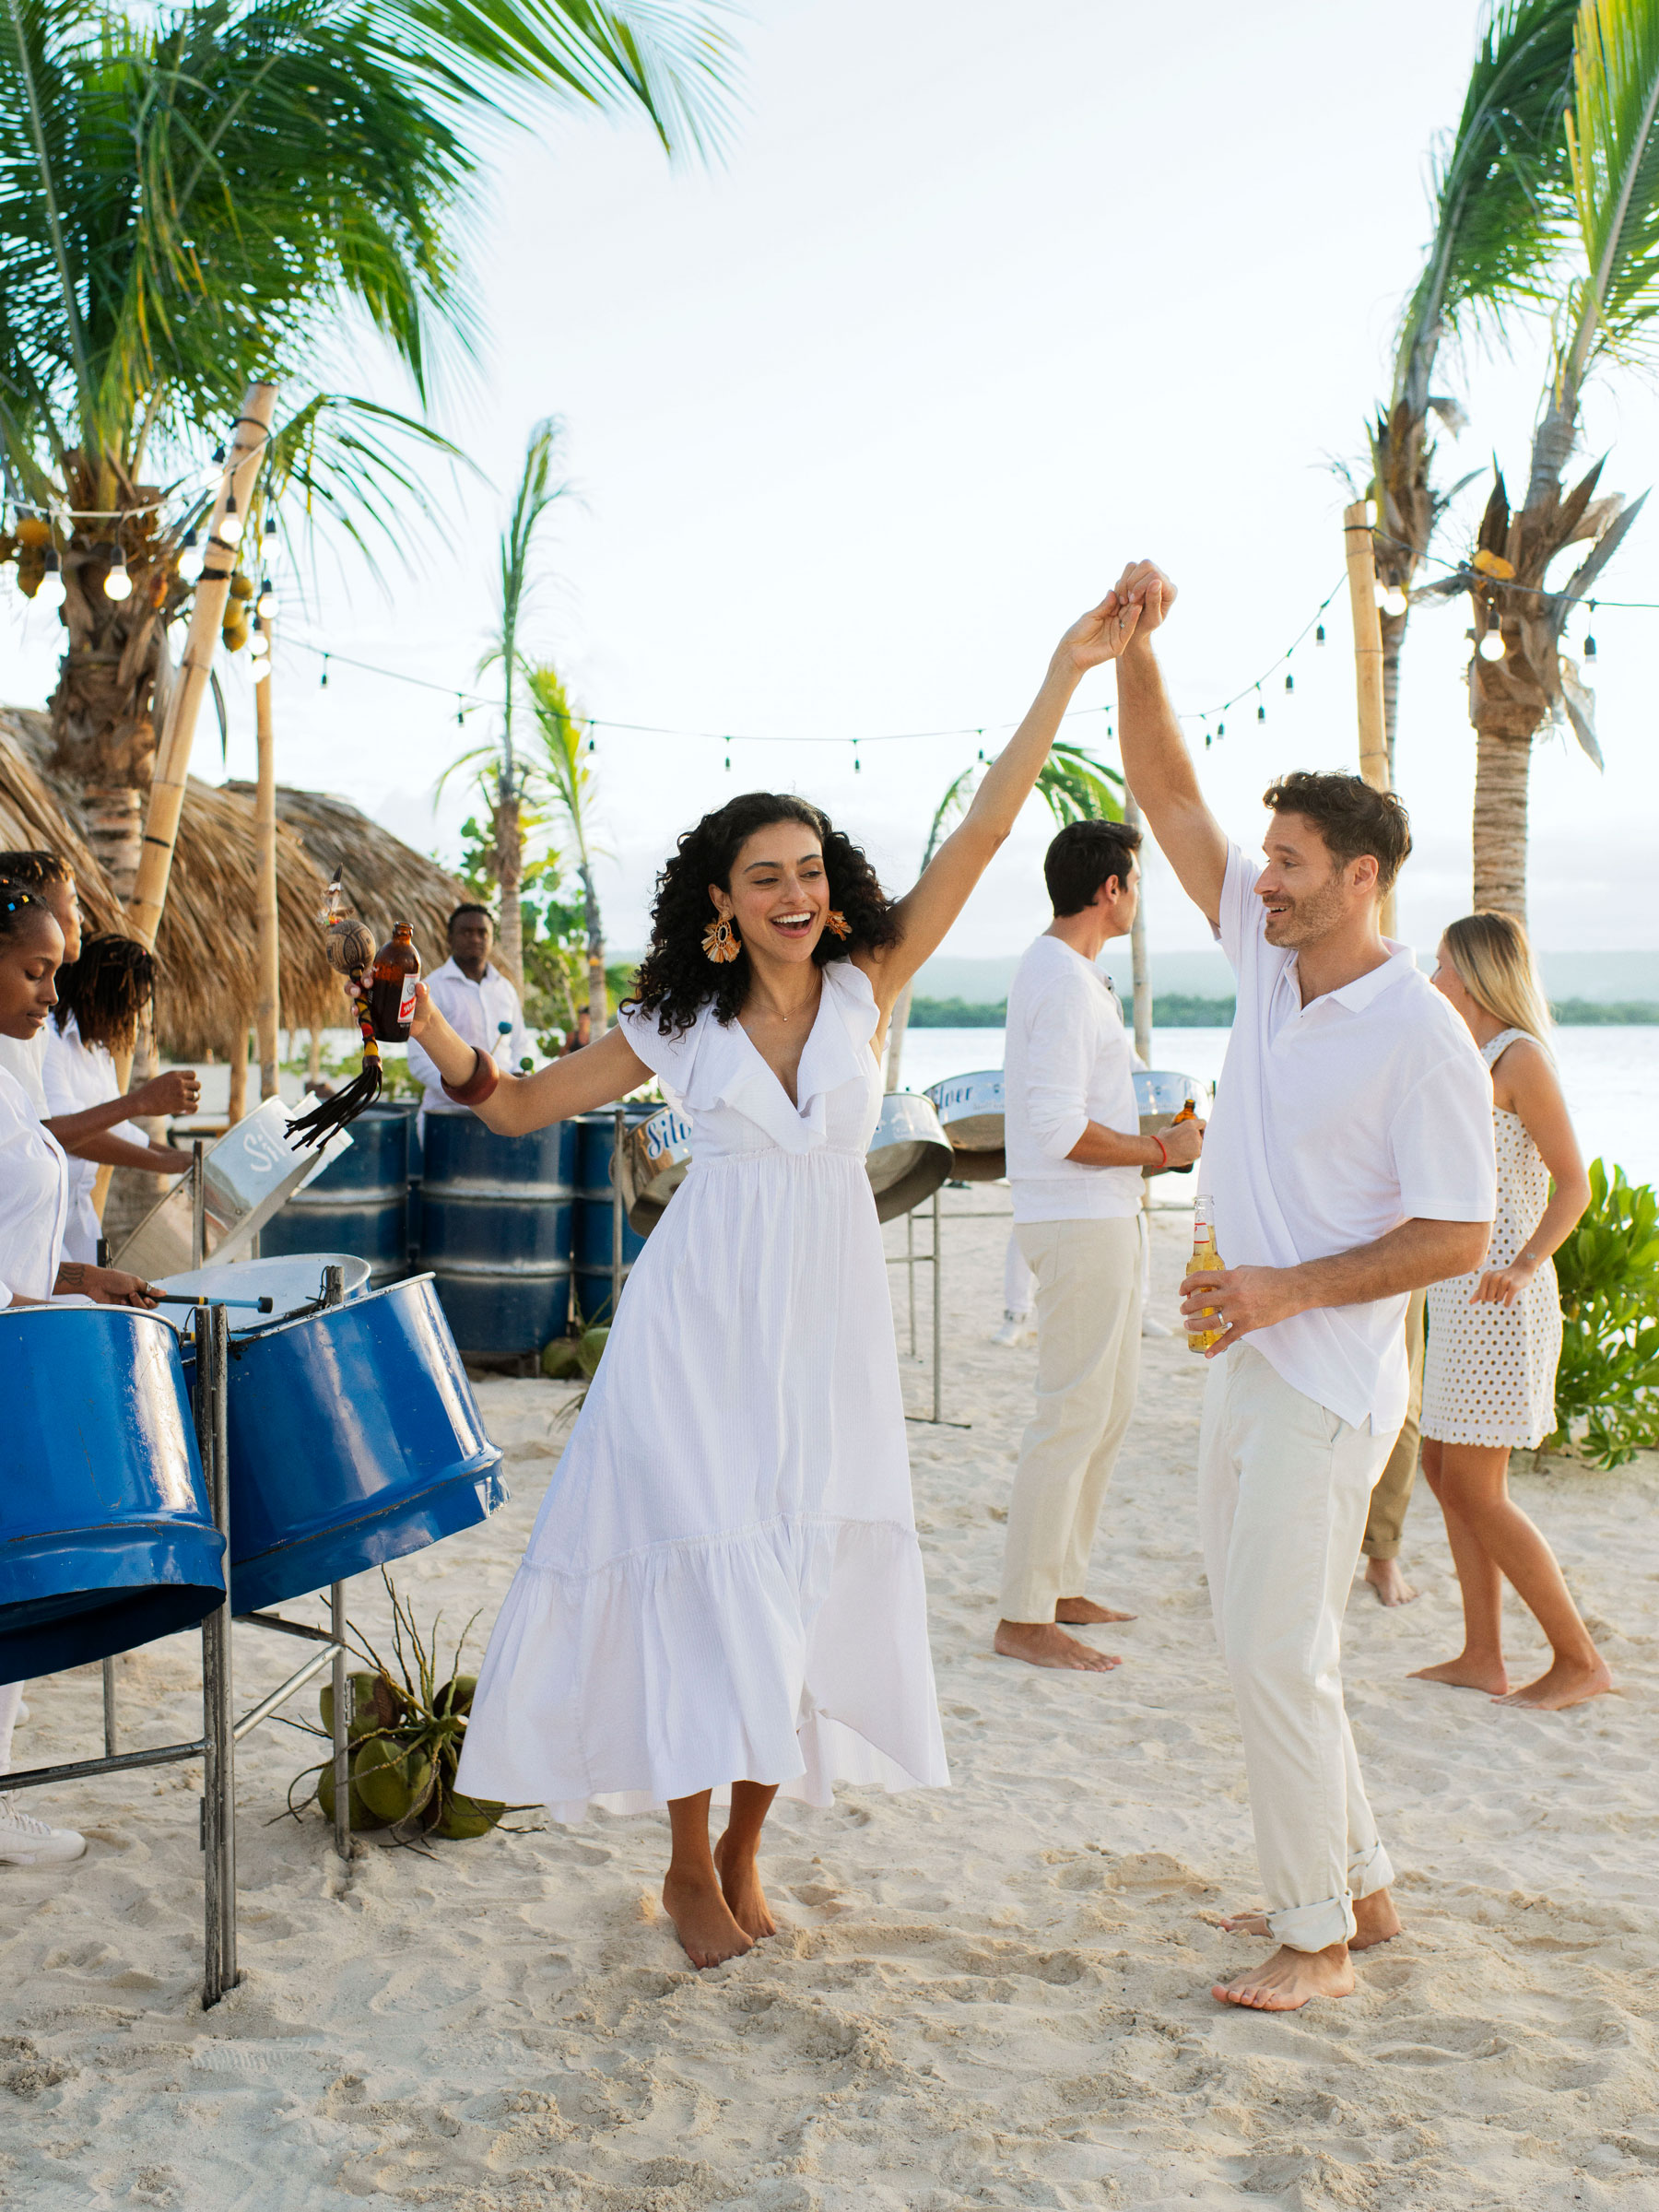 Dancing on the Beach in Jamaica